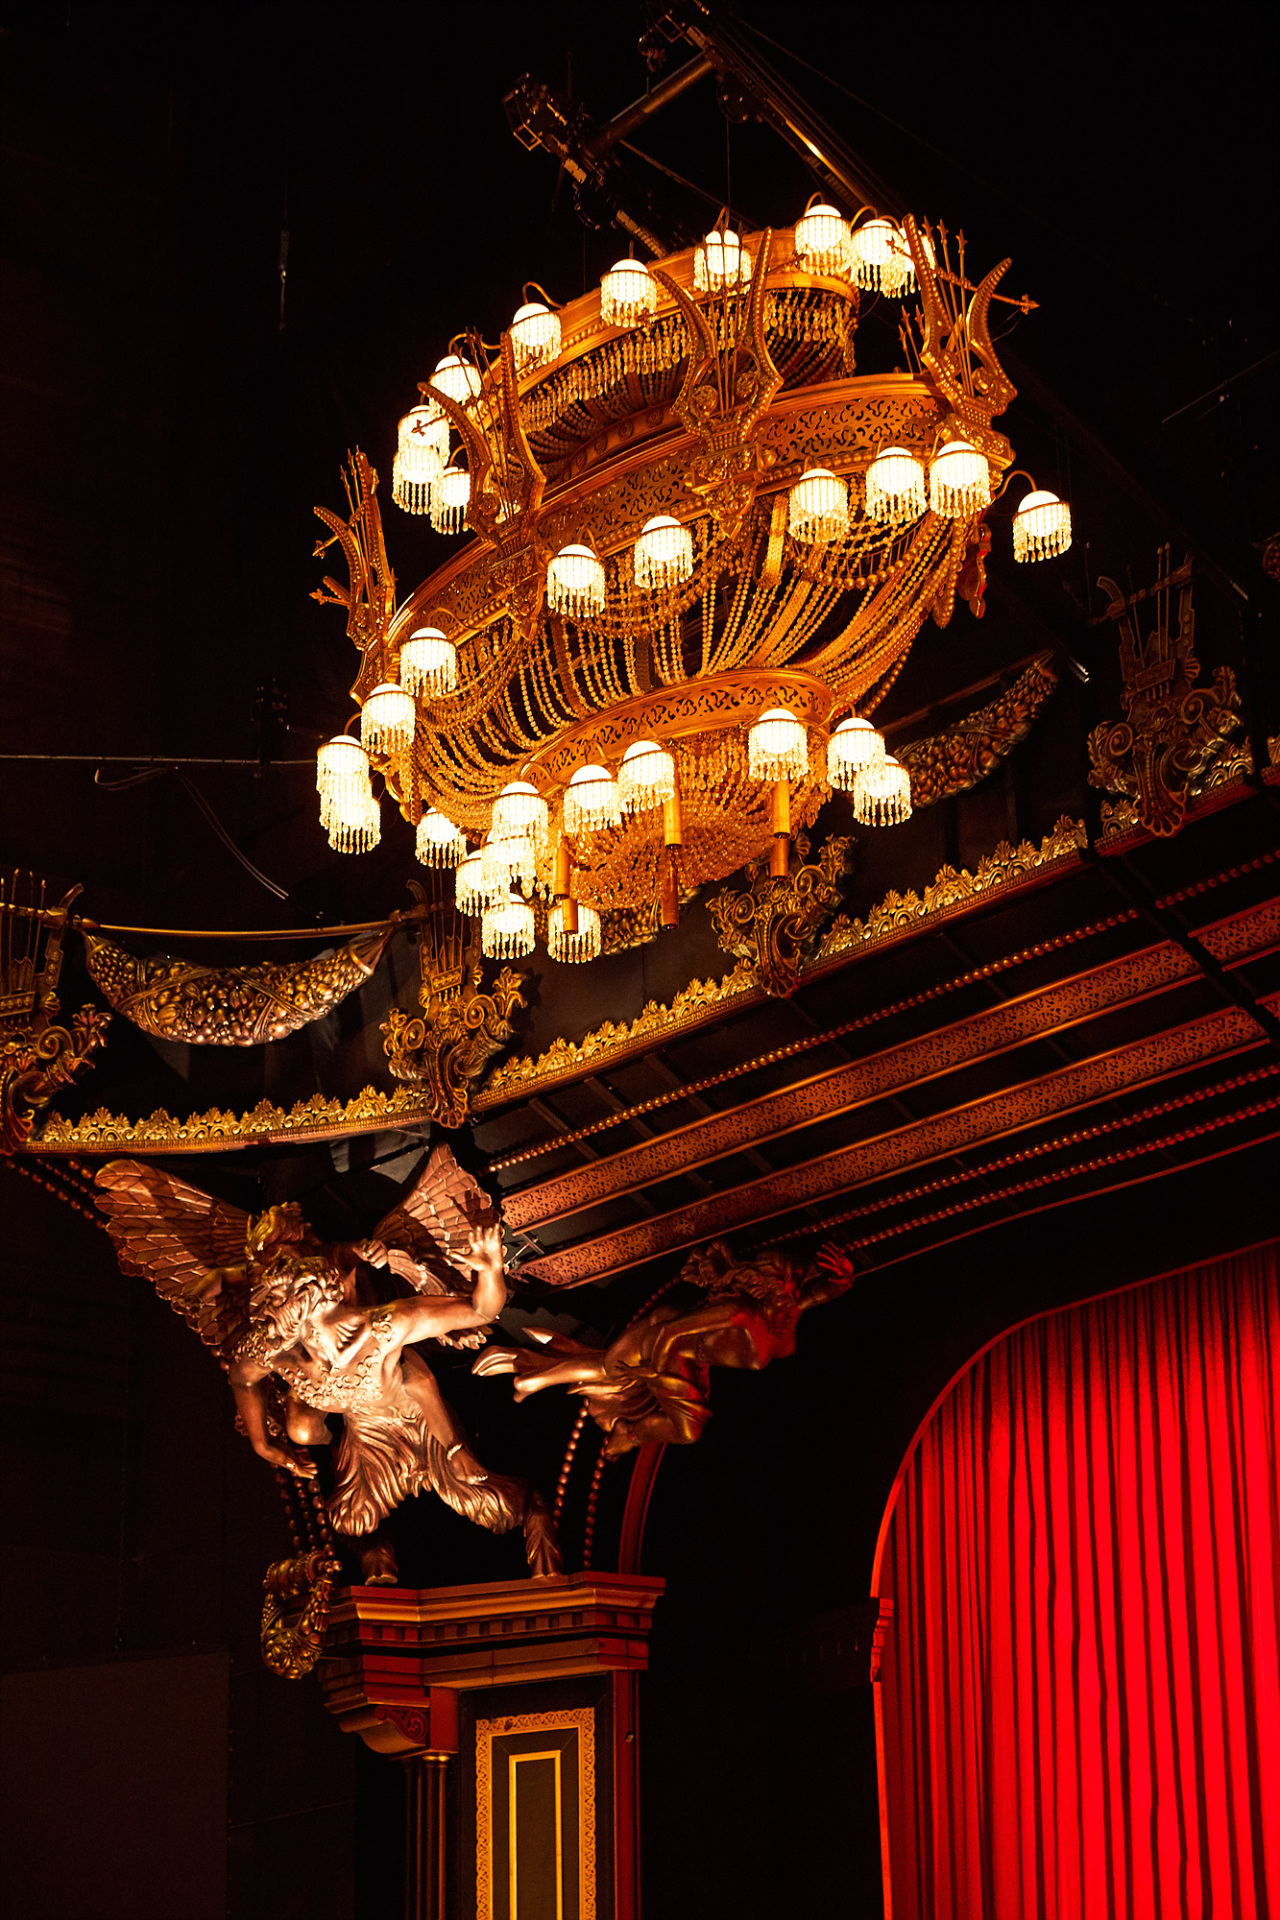 The chandelier is suspended by two cables, hanging above the front raw of the audience. It crashes down on to the stage, signaling the phantom's anger. (S&Co)